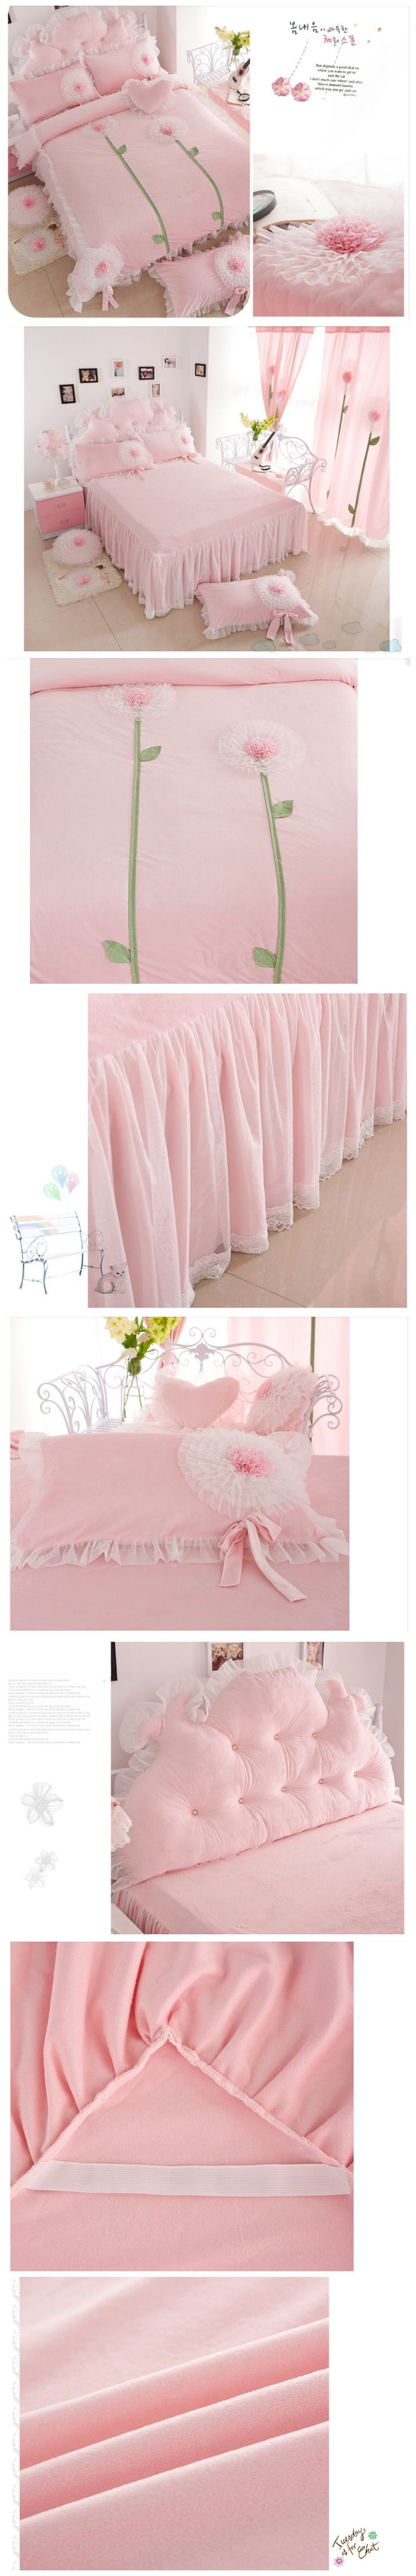 Korean Pink Princess Bedding Set Twin Queen Size Kids Girls Lace Ruffle Duvet Cover Sets Velvet Comforter Sets